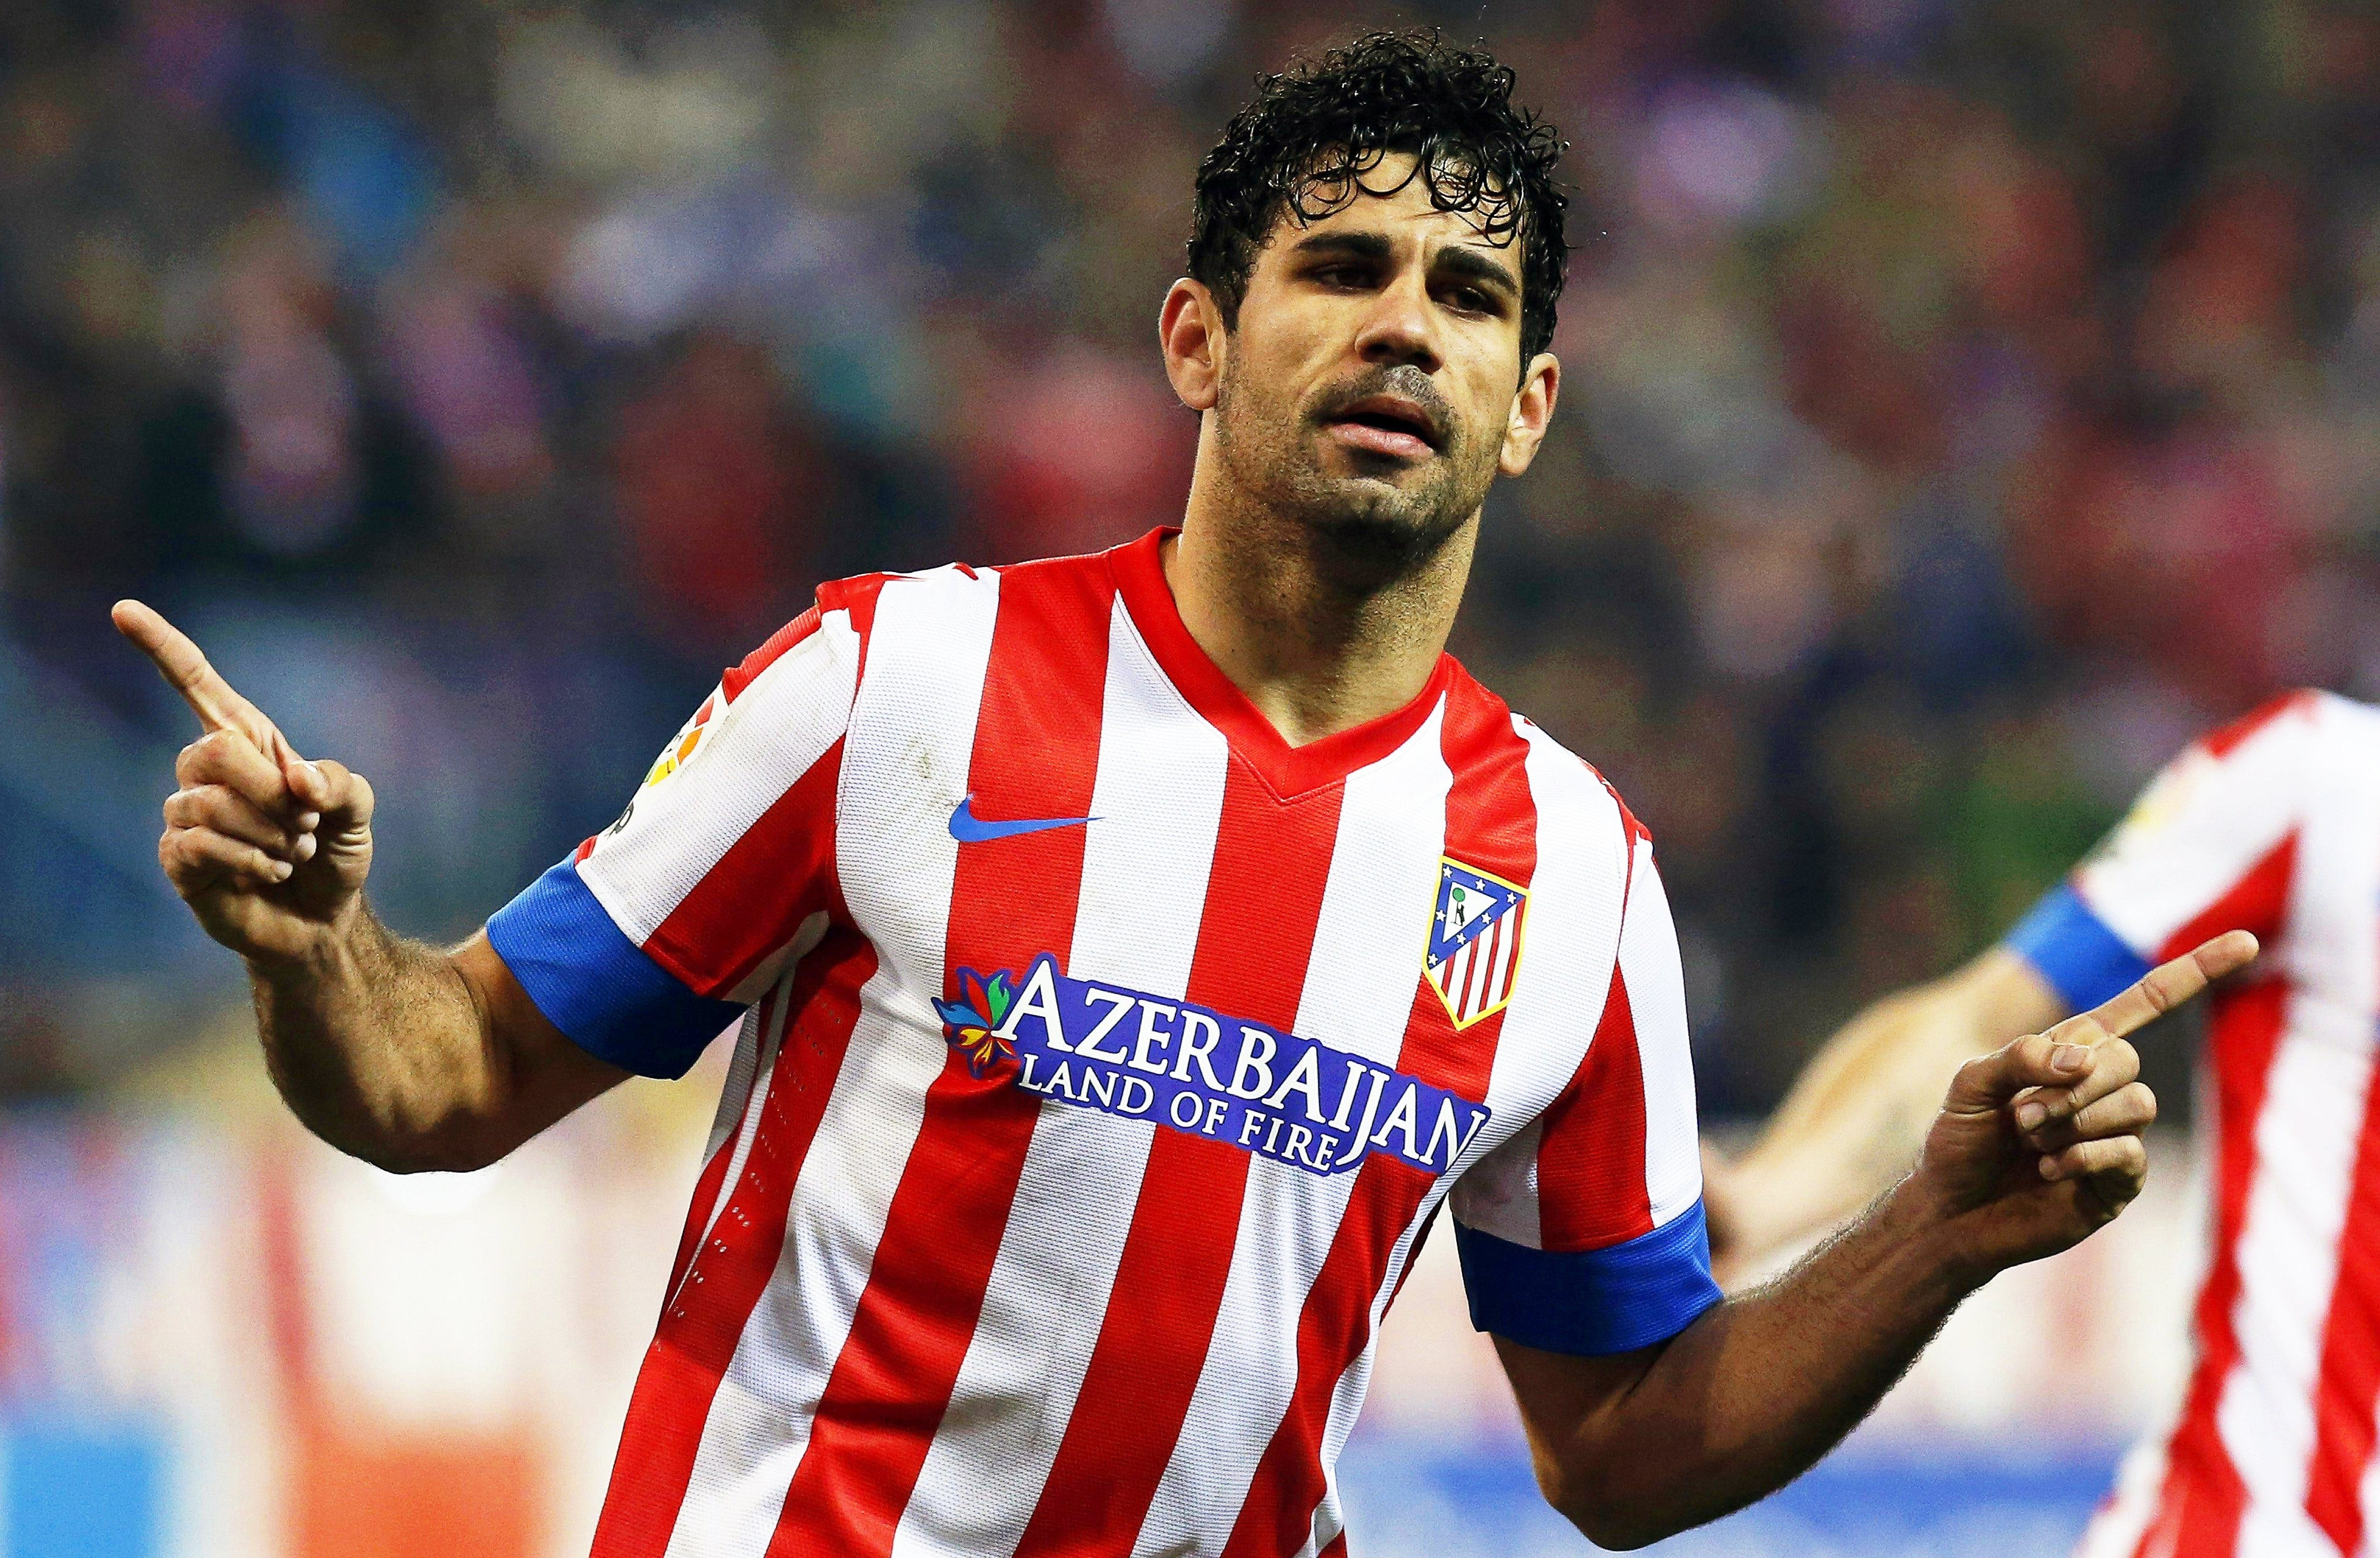 Chelsea's Diego Costa to transfer to Atletico Madrid